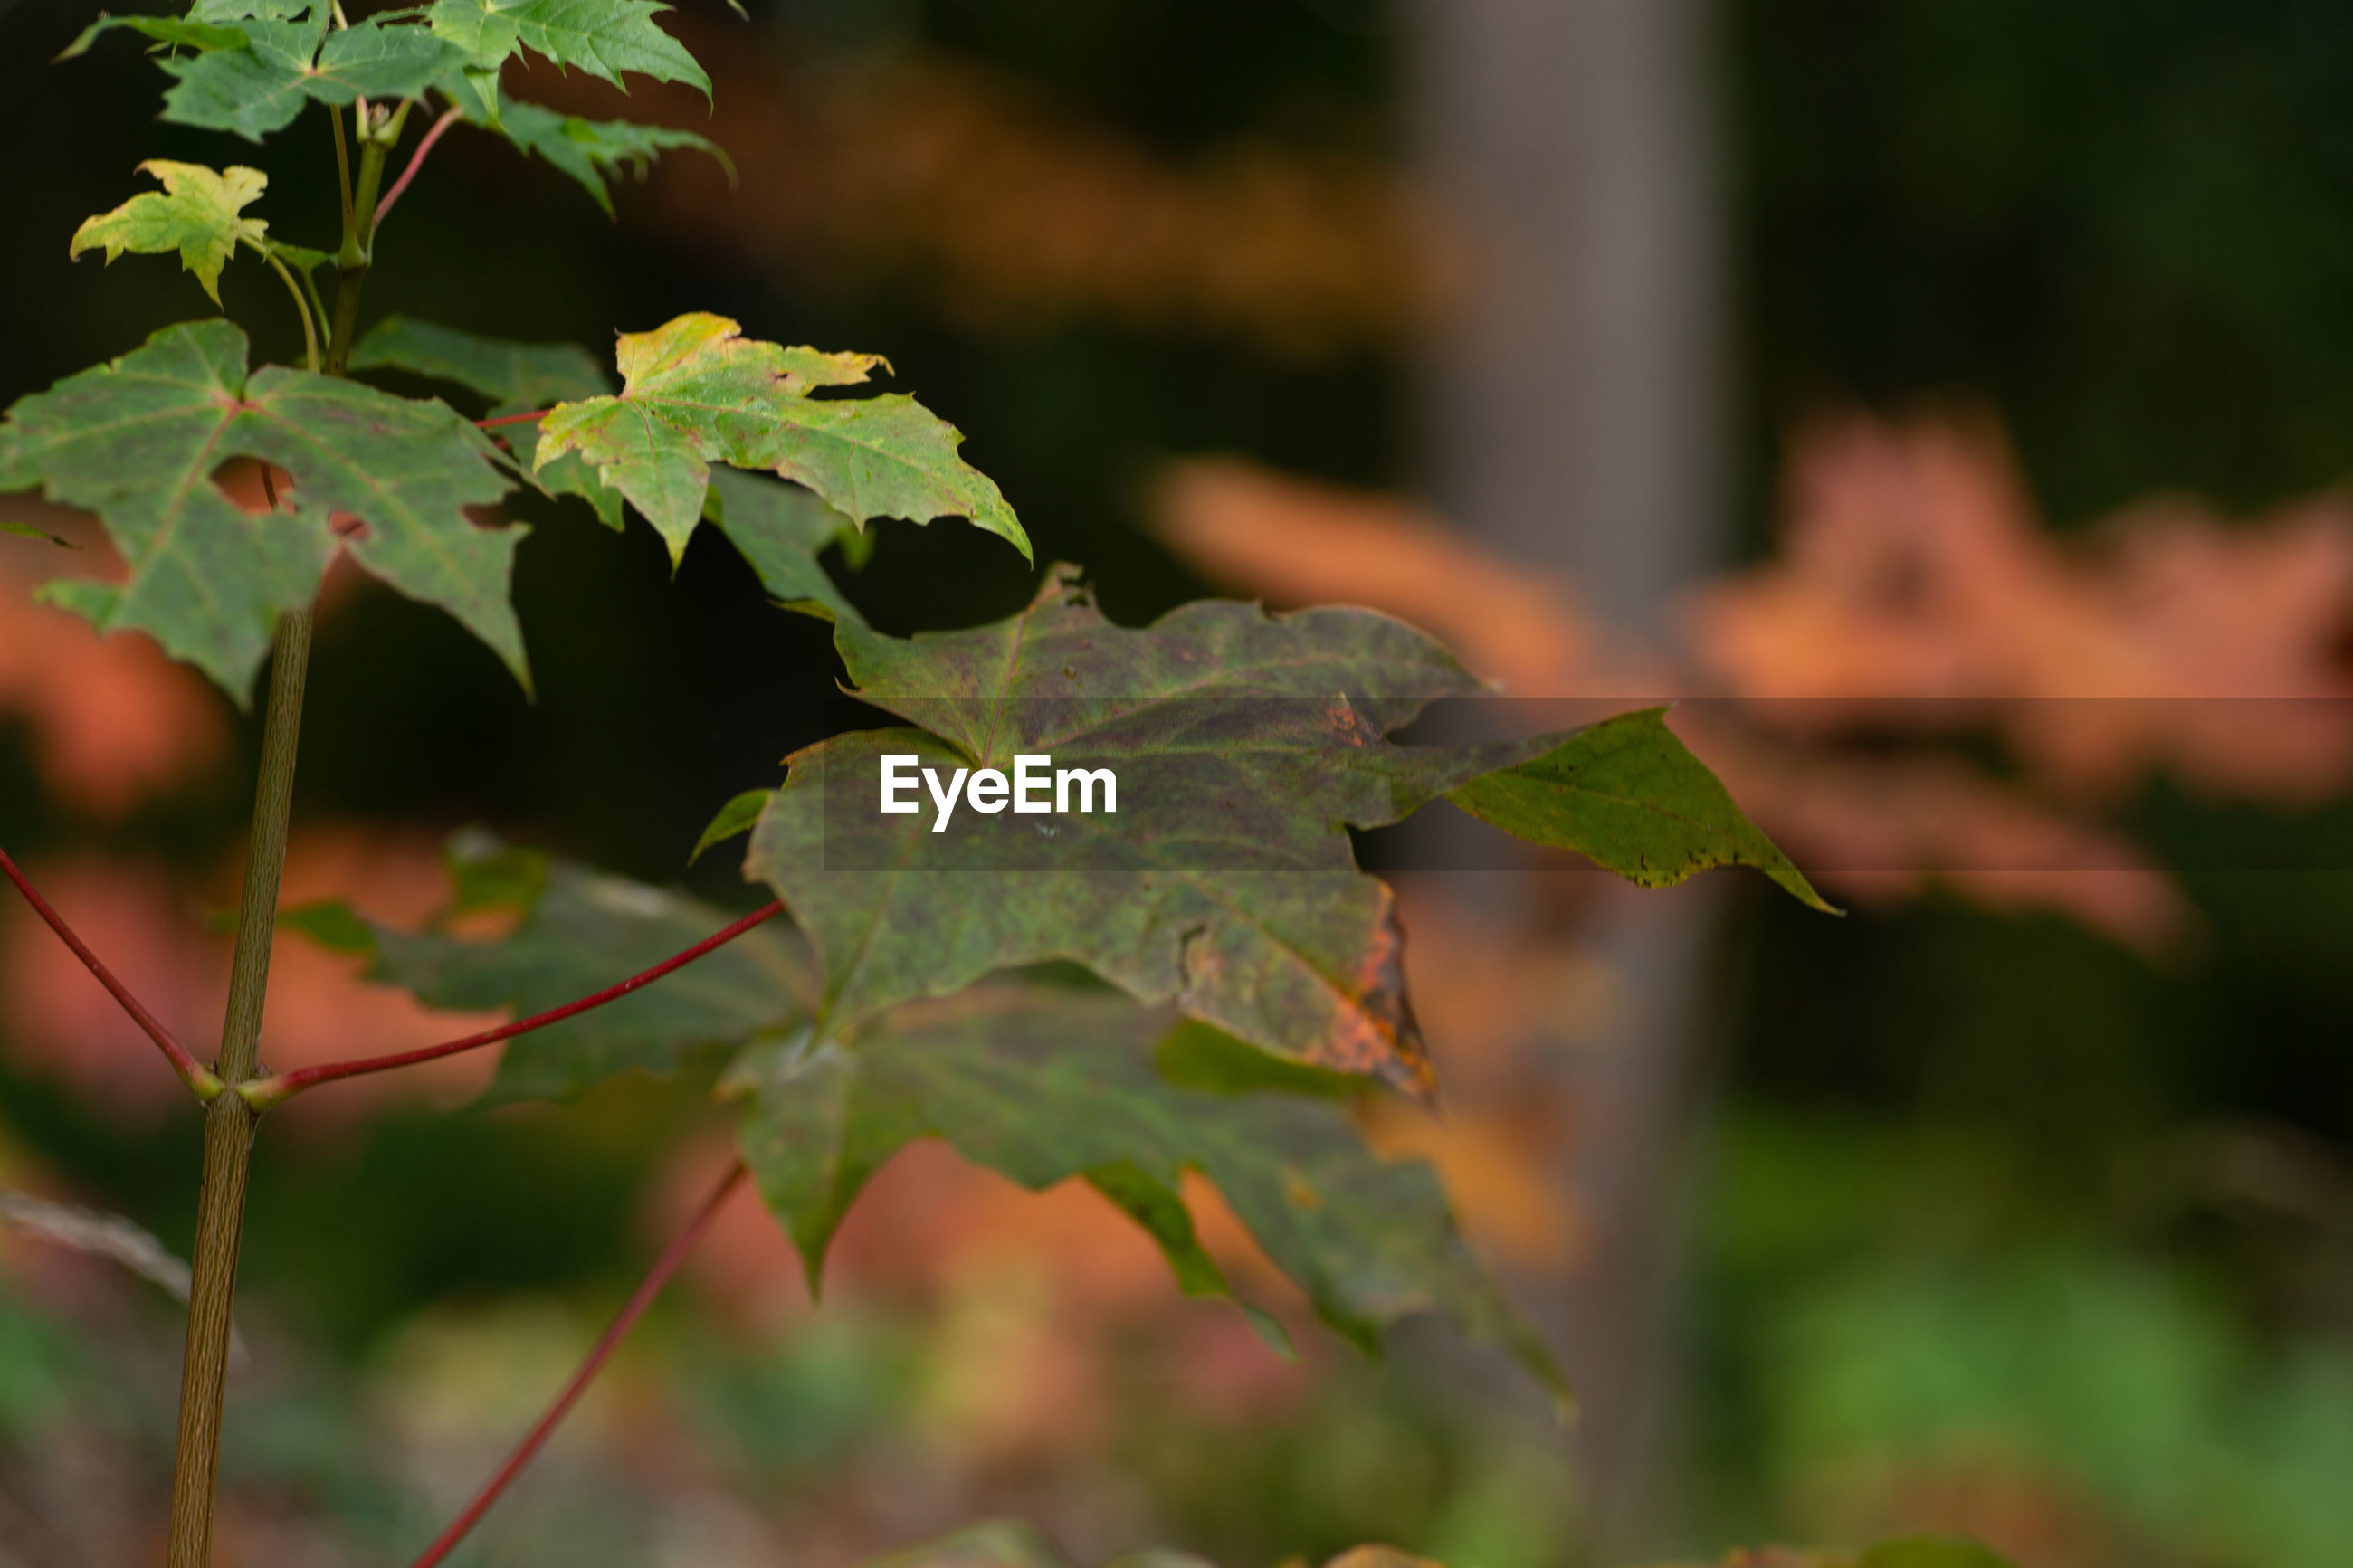 CLOSE-UP OF FRESH MAPLE LEAVES ON PLANT